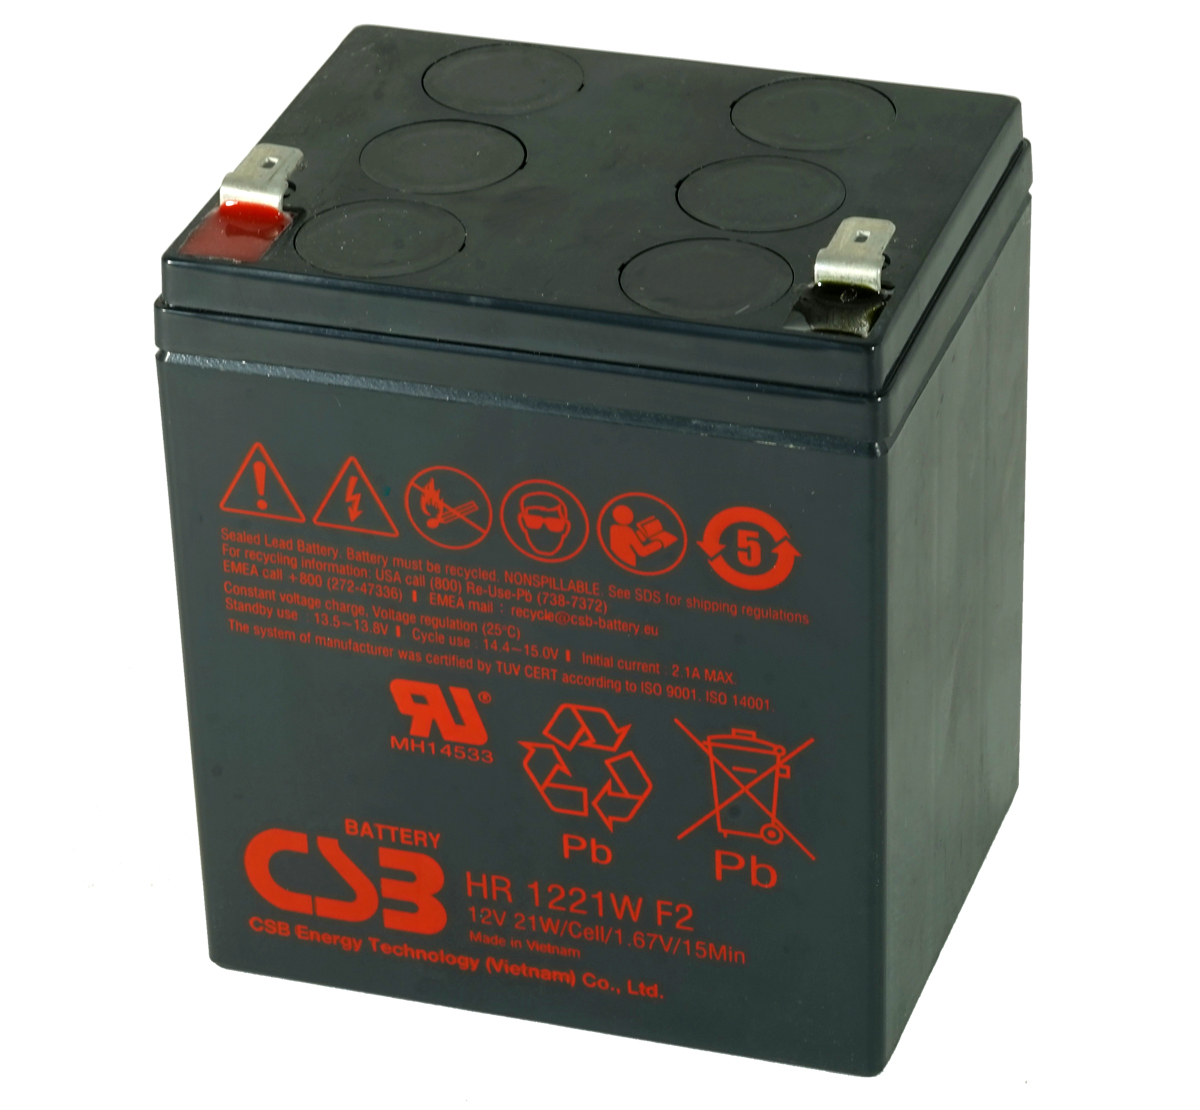 MDS2541 UPS Battery Kit for MGE AB2541